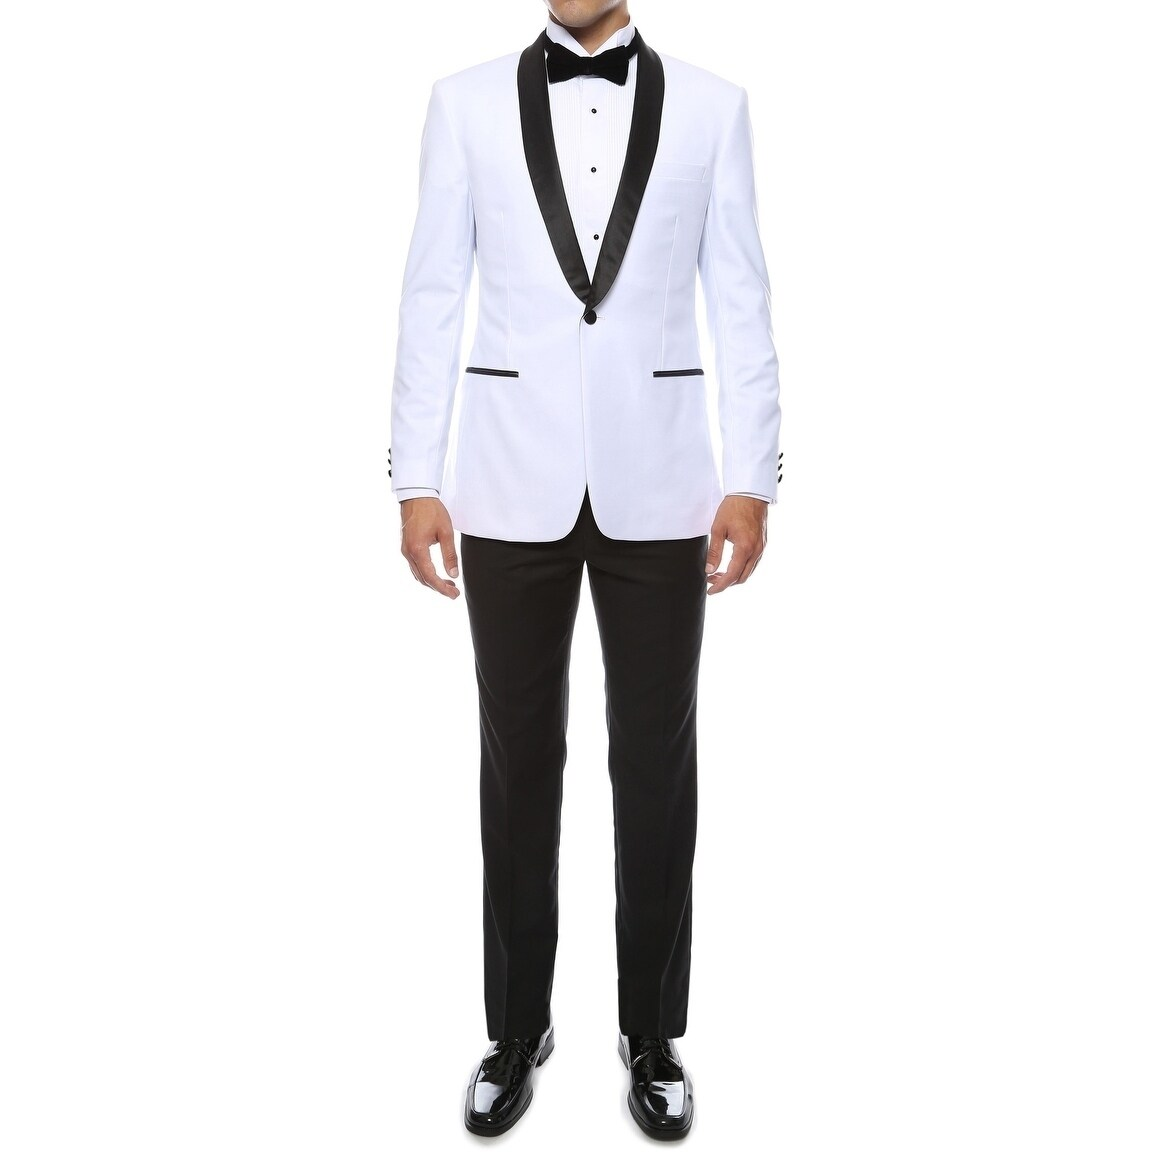 0f842cb787efa3 Shop Braveman Men's Slim Fit Shawl Lapel Runway Tuxedo - On Sale - Free  Shipping Today - Overstock - 17412353